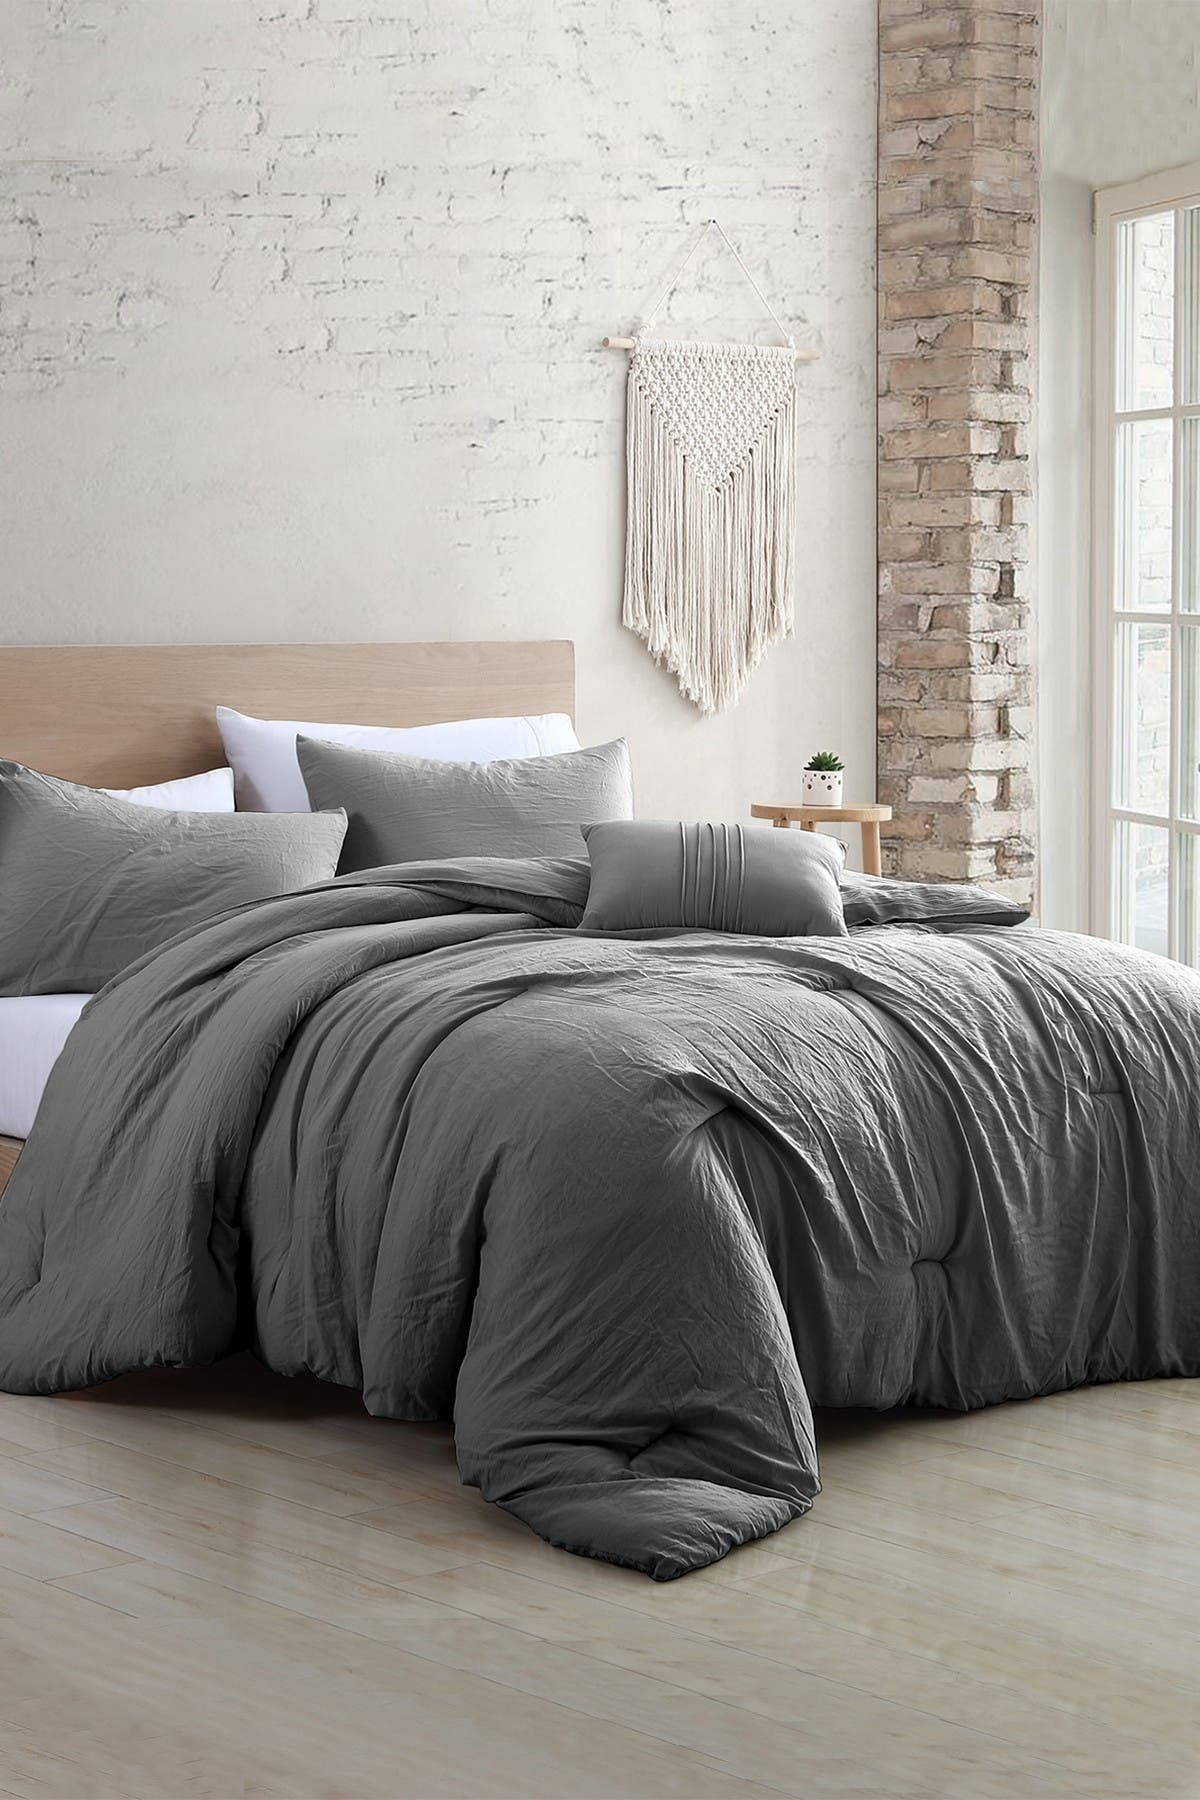 Image of Modern Threads 4-Piece Garment-Washed Comforter Set - Beck Grey - Queen